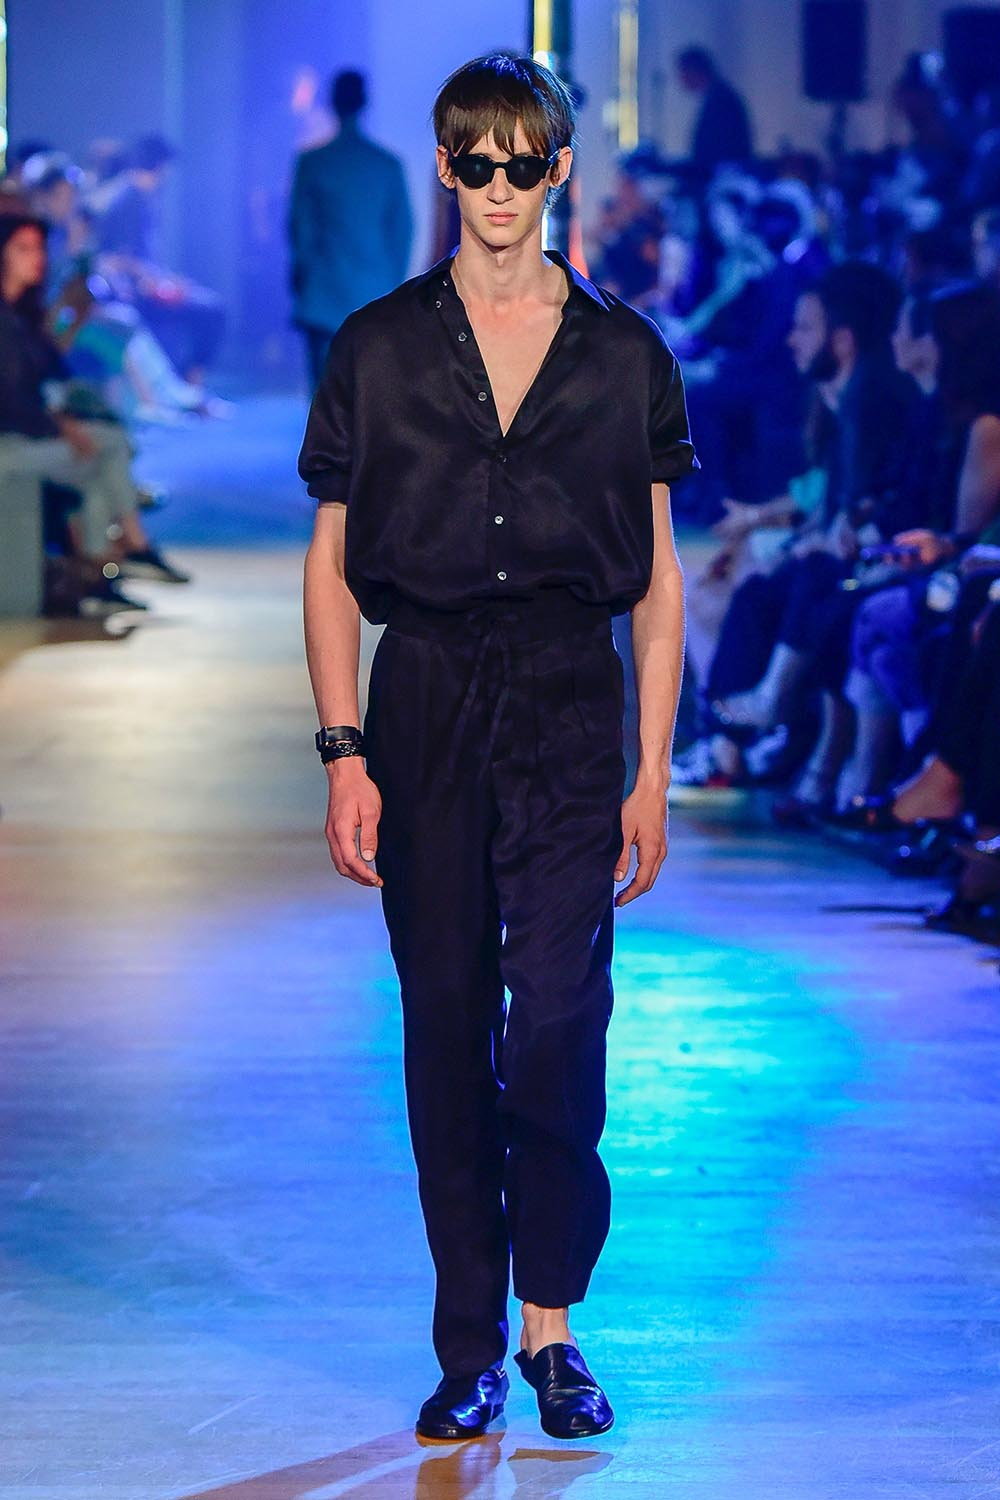 Cerruti Spring Summer 2019 Presetnation in Paris at Paris Fashio